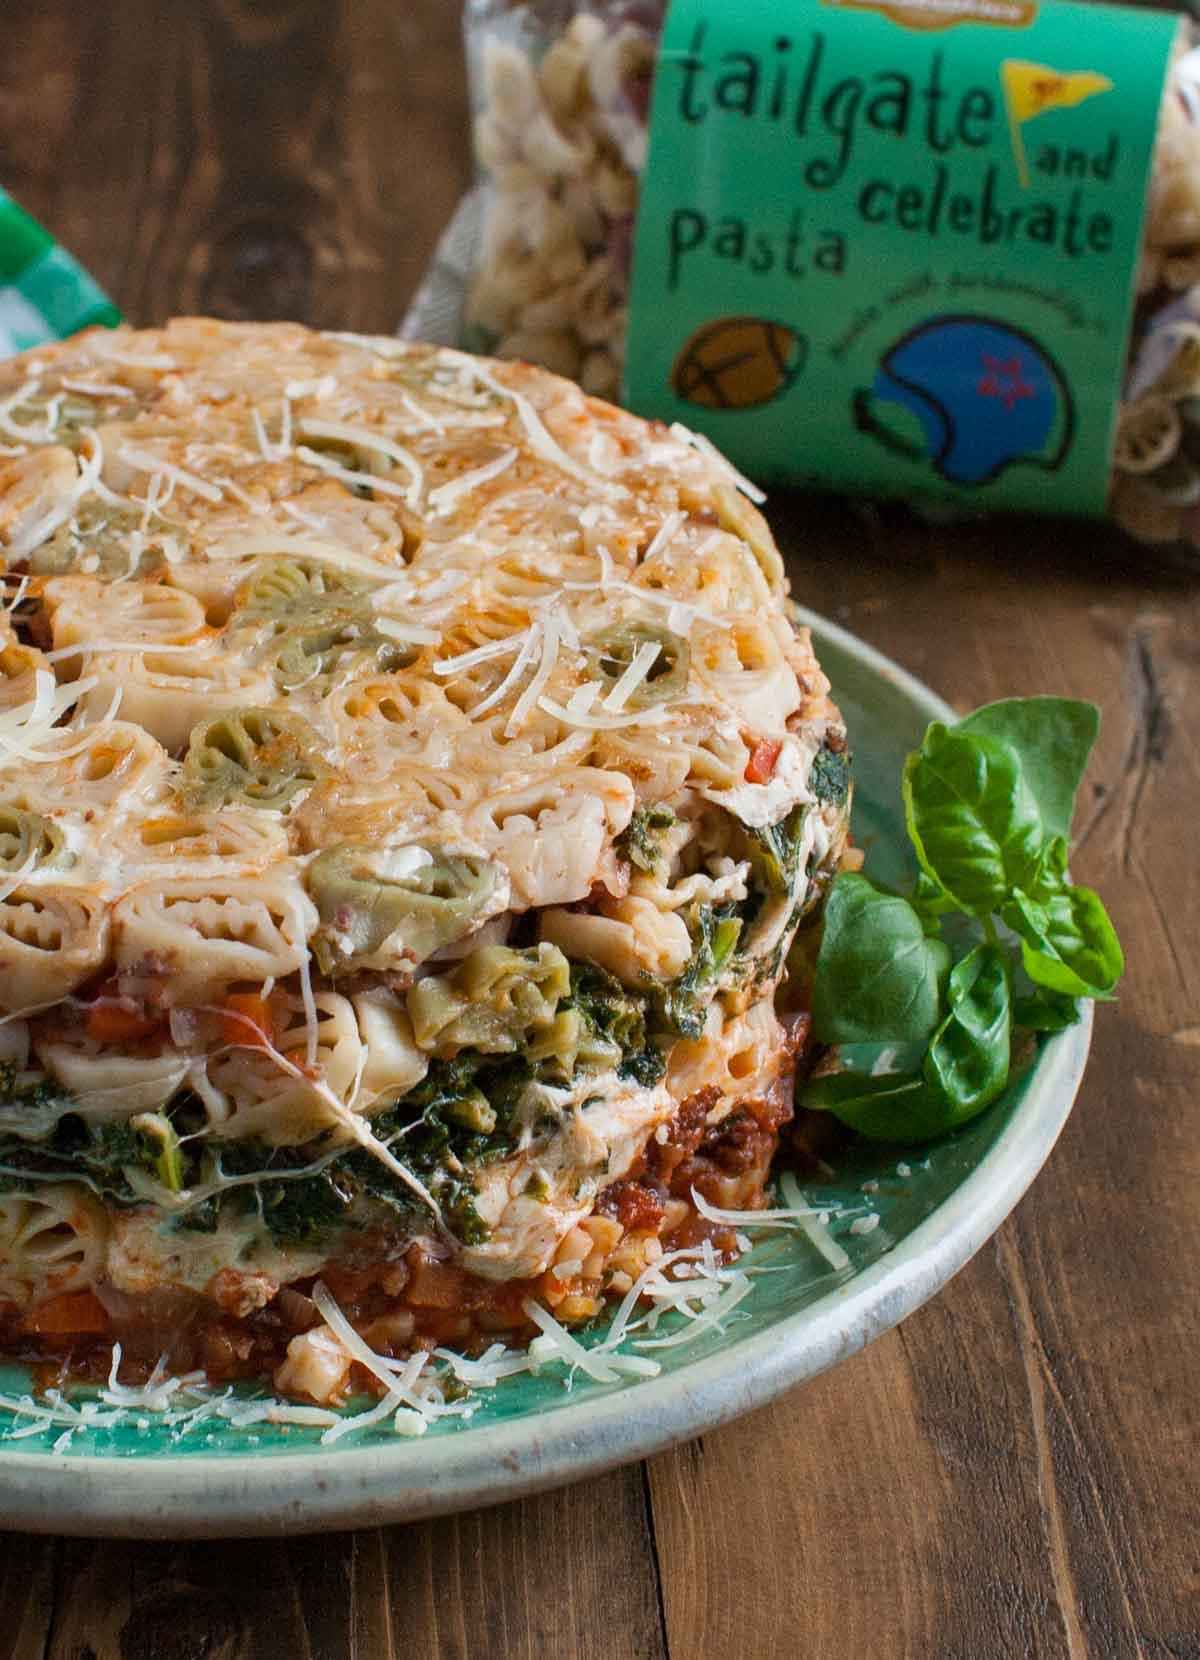 Tailgate Timballo | WorldofPastabilities.com | Nine layers of fabulous flavors: meat sauce, kale bechamel, fresh cheeses, and pasta. Serve slices during the big games and WOW your guests! Fun with any shaped pasta!